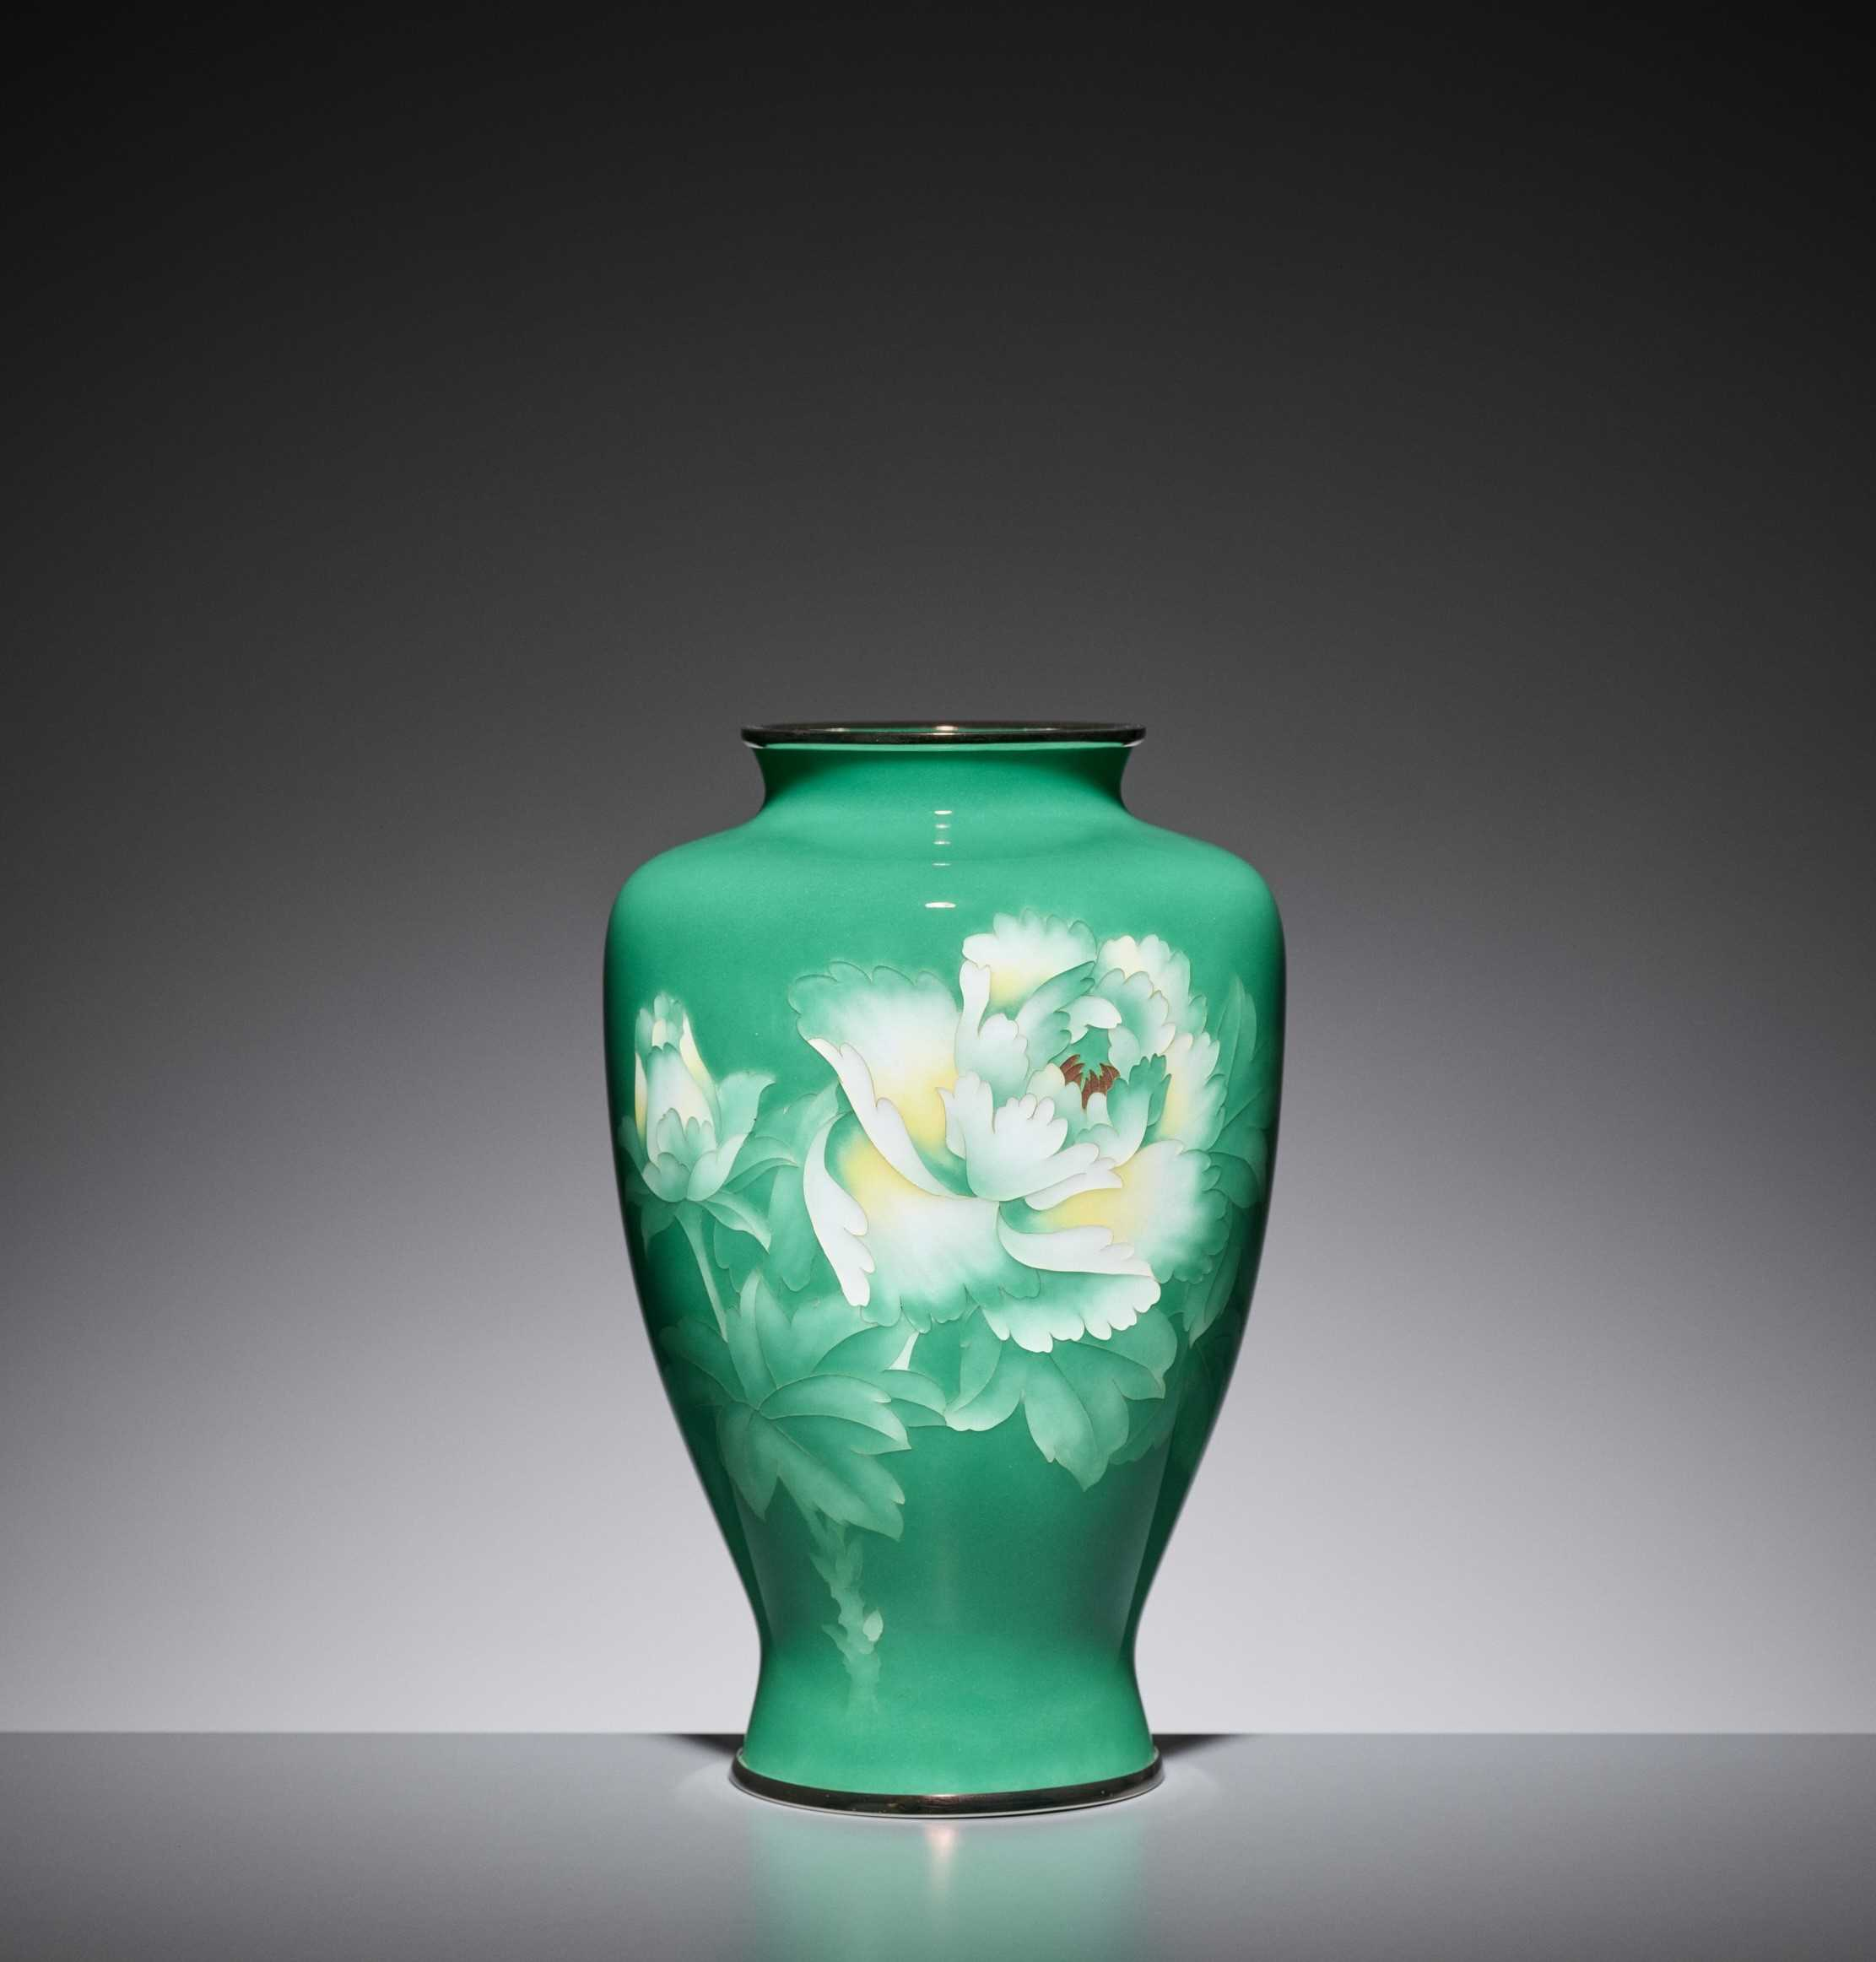 Lot 91 - AN EMERALD GREEN CLOISONNÉ ENAMEL VASE WITH PEONY, ATTRIBUTED TO THE WORKSHOP OF ANDO JUBEI